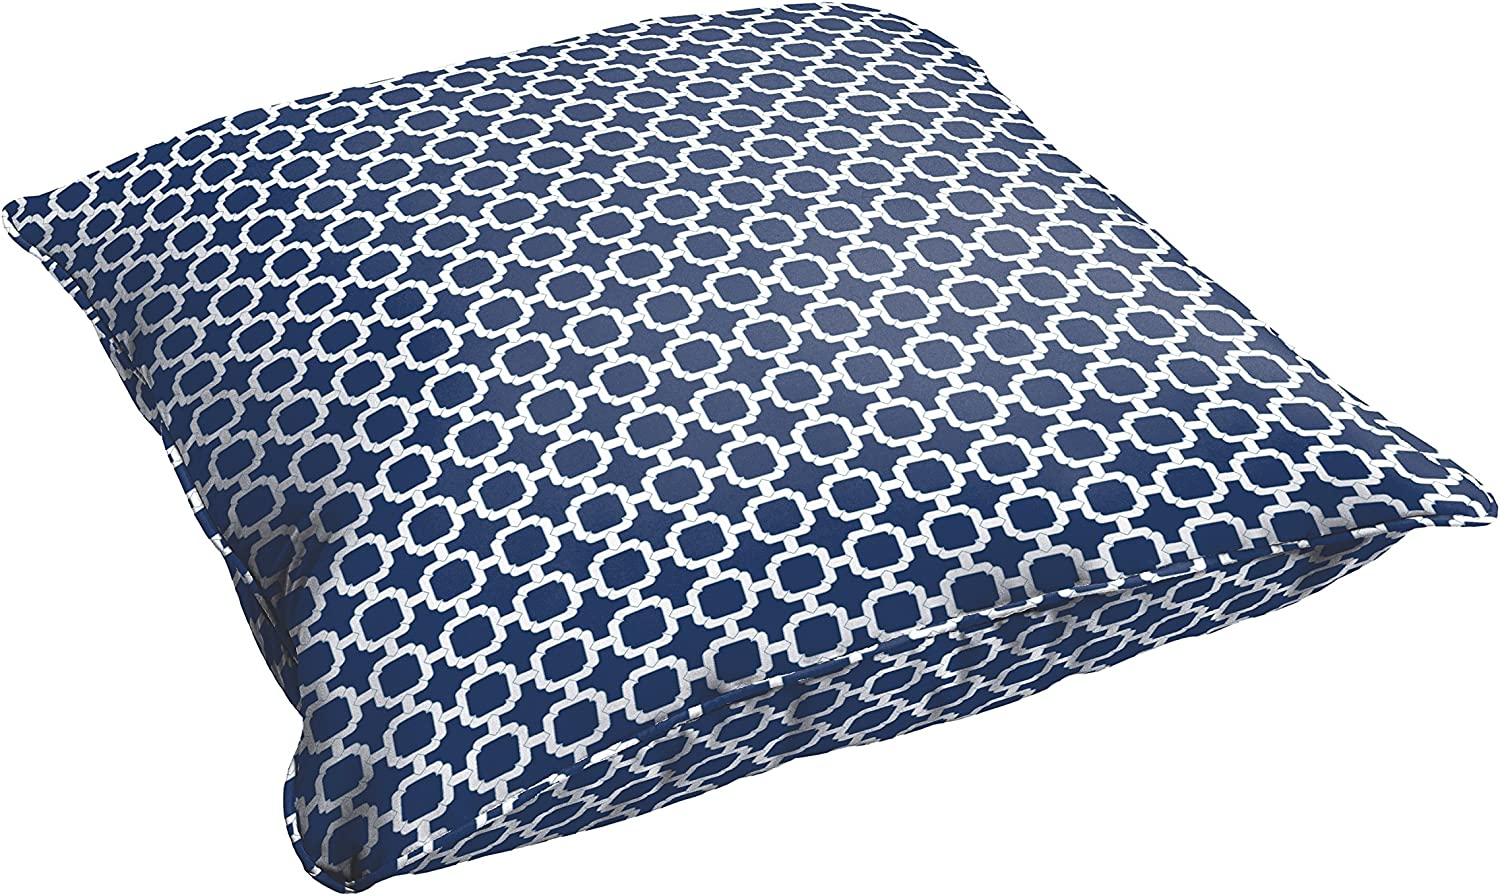 Mozaic Company AZPS4774 Indoor Outdoor Pillow Square cheap Floor with 35% OFF